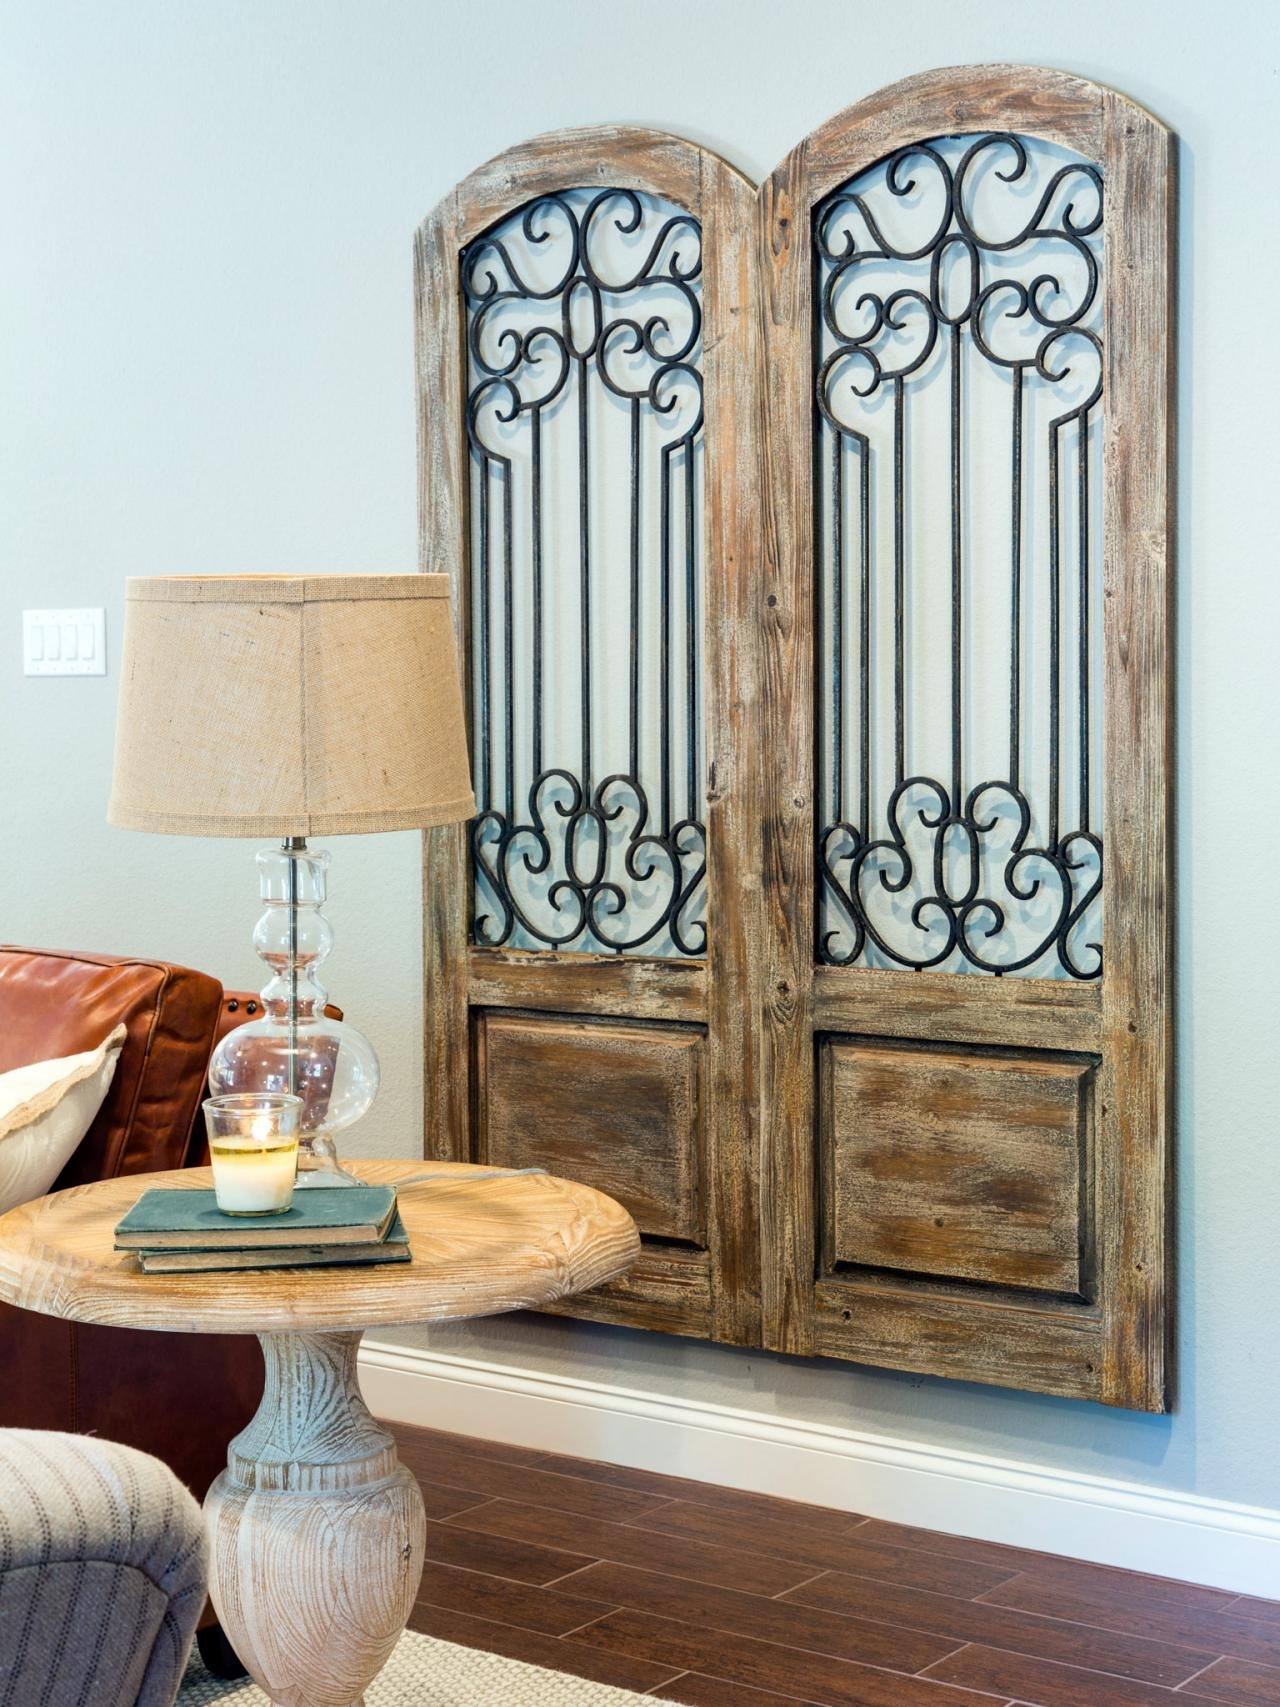 Fill Your Walls With 'fixer Upper' Inspired Artwork: 11 Easy To Pertaining To Most Up To Date Architectural Wall Accents (Gallery 3 of 15)